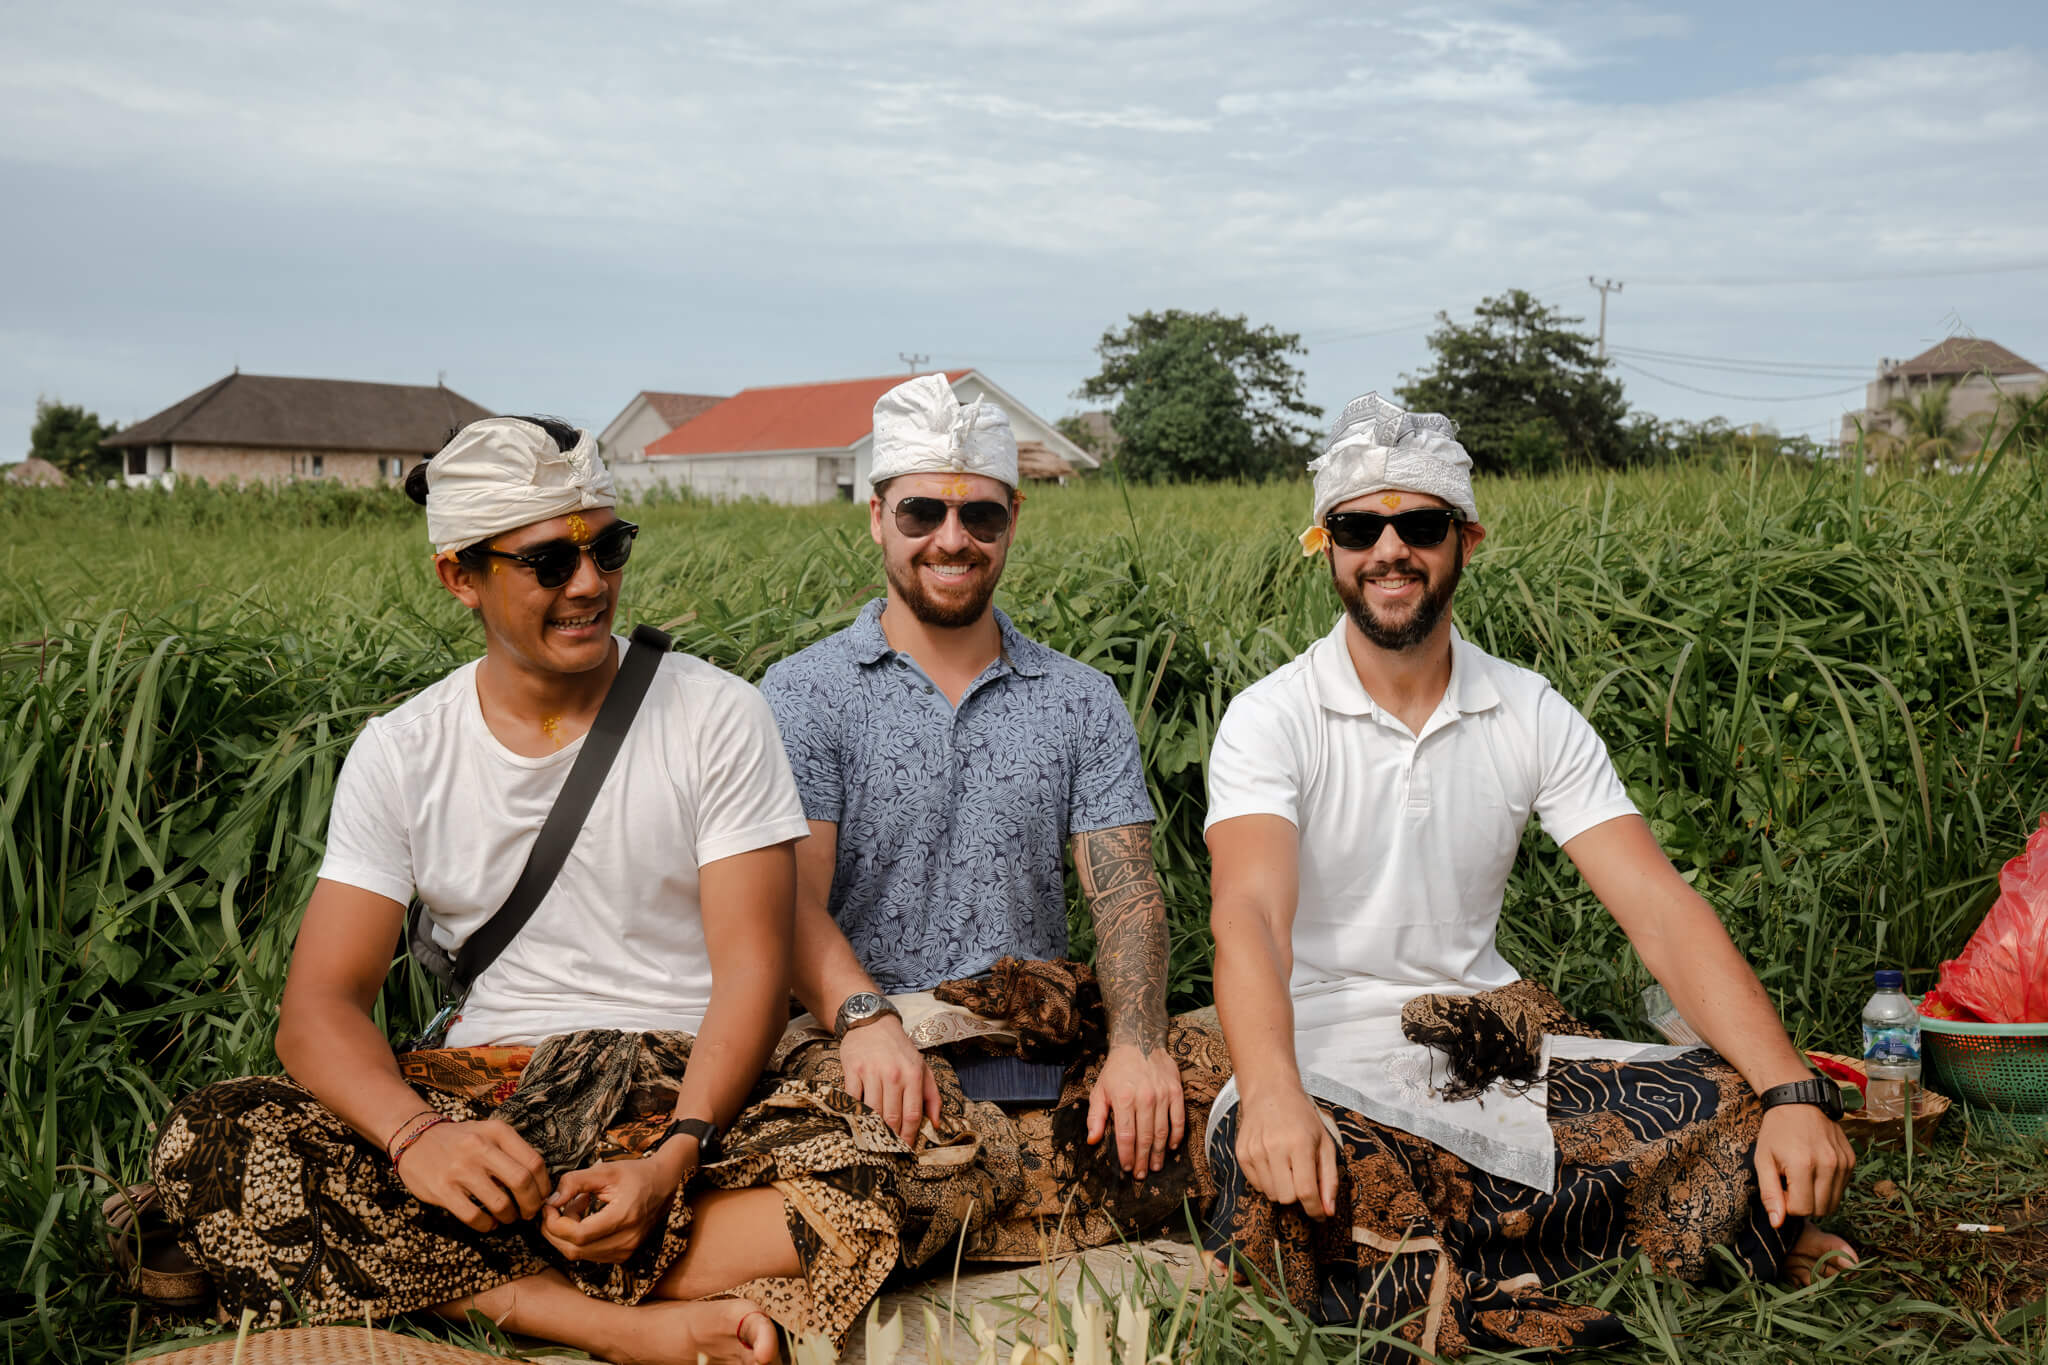 Will Hatton and two more men sitting in a rice paddy in Bali in ceremonial garb